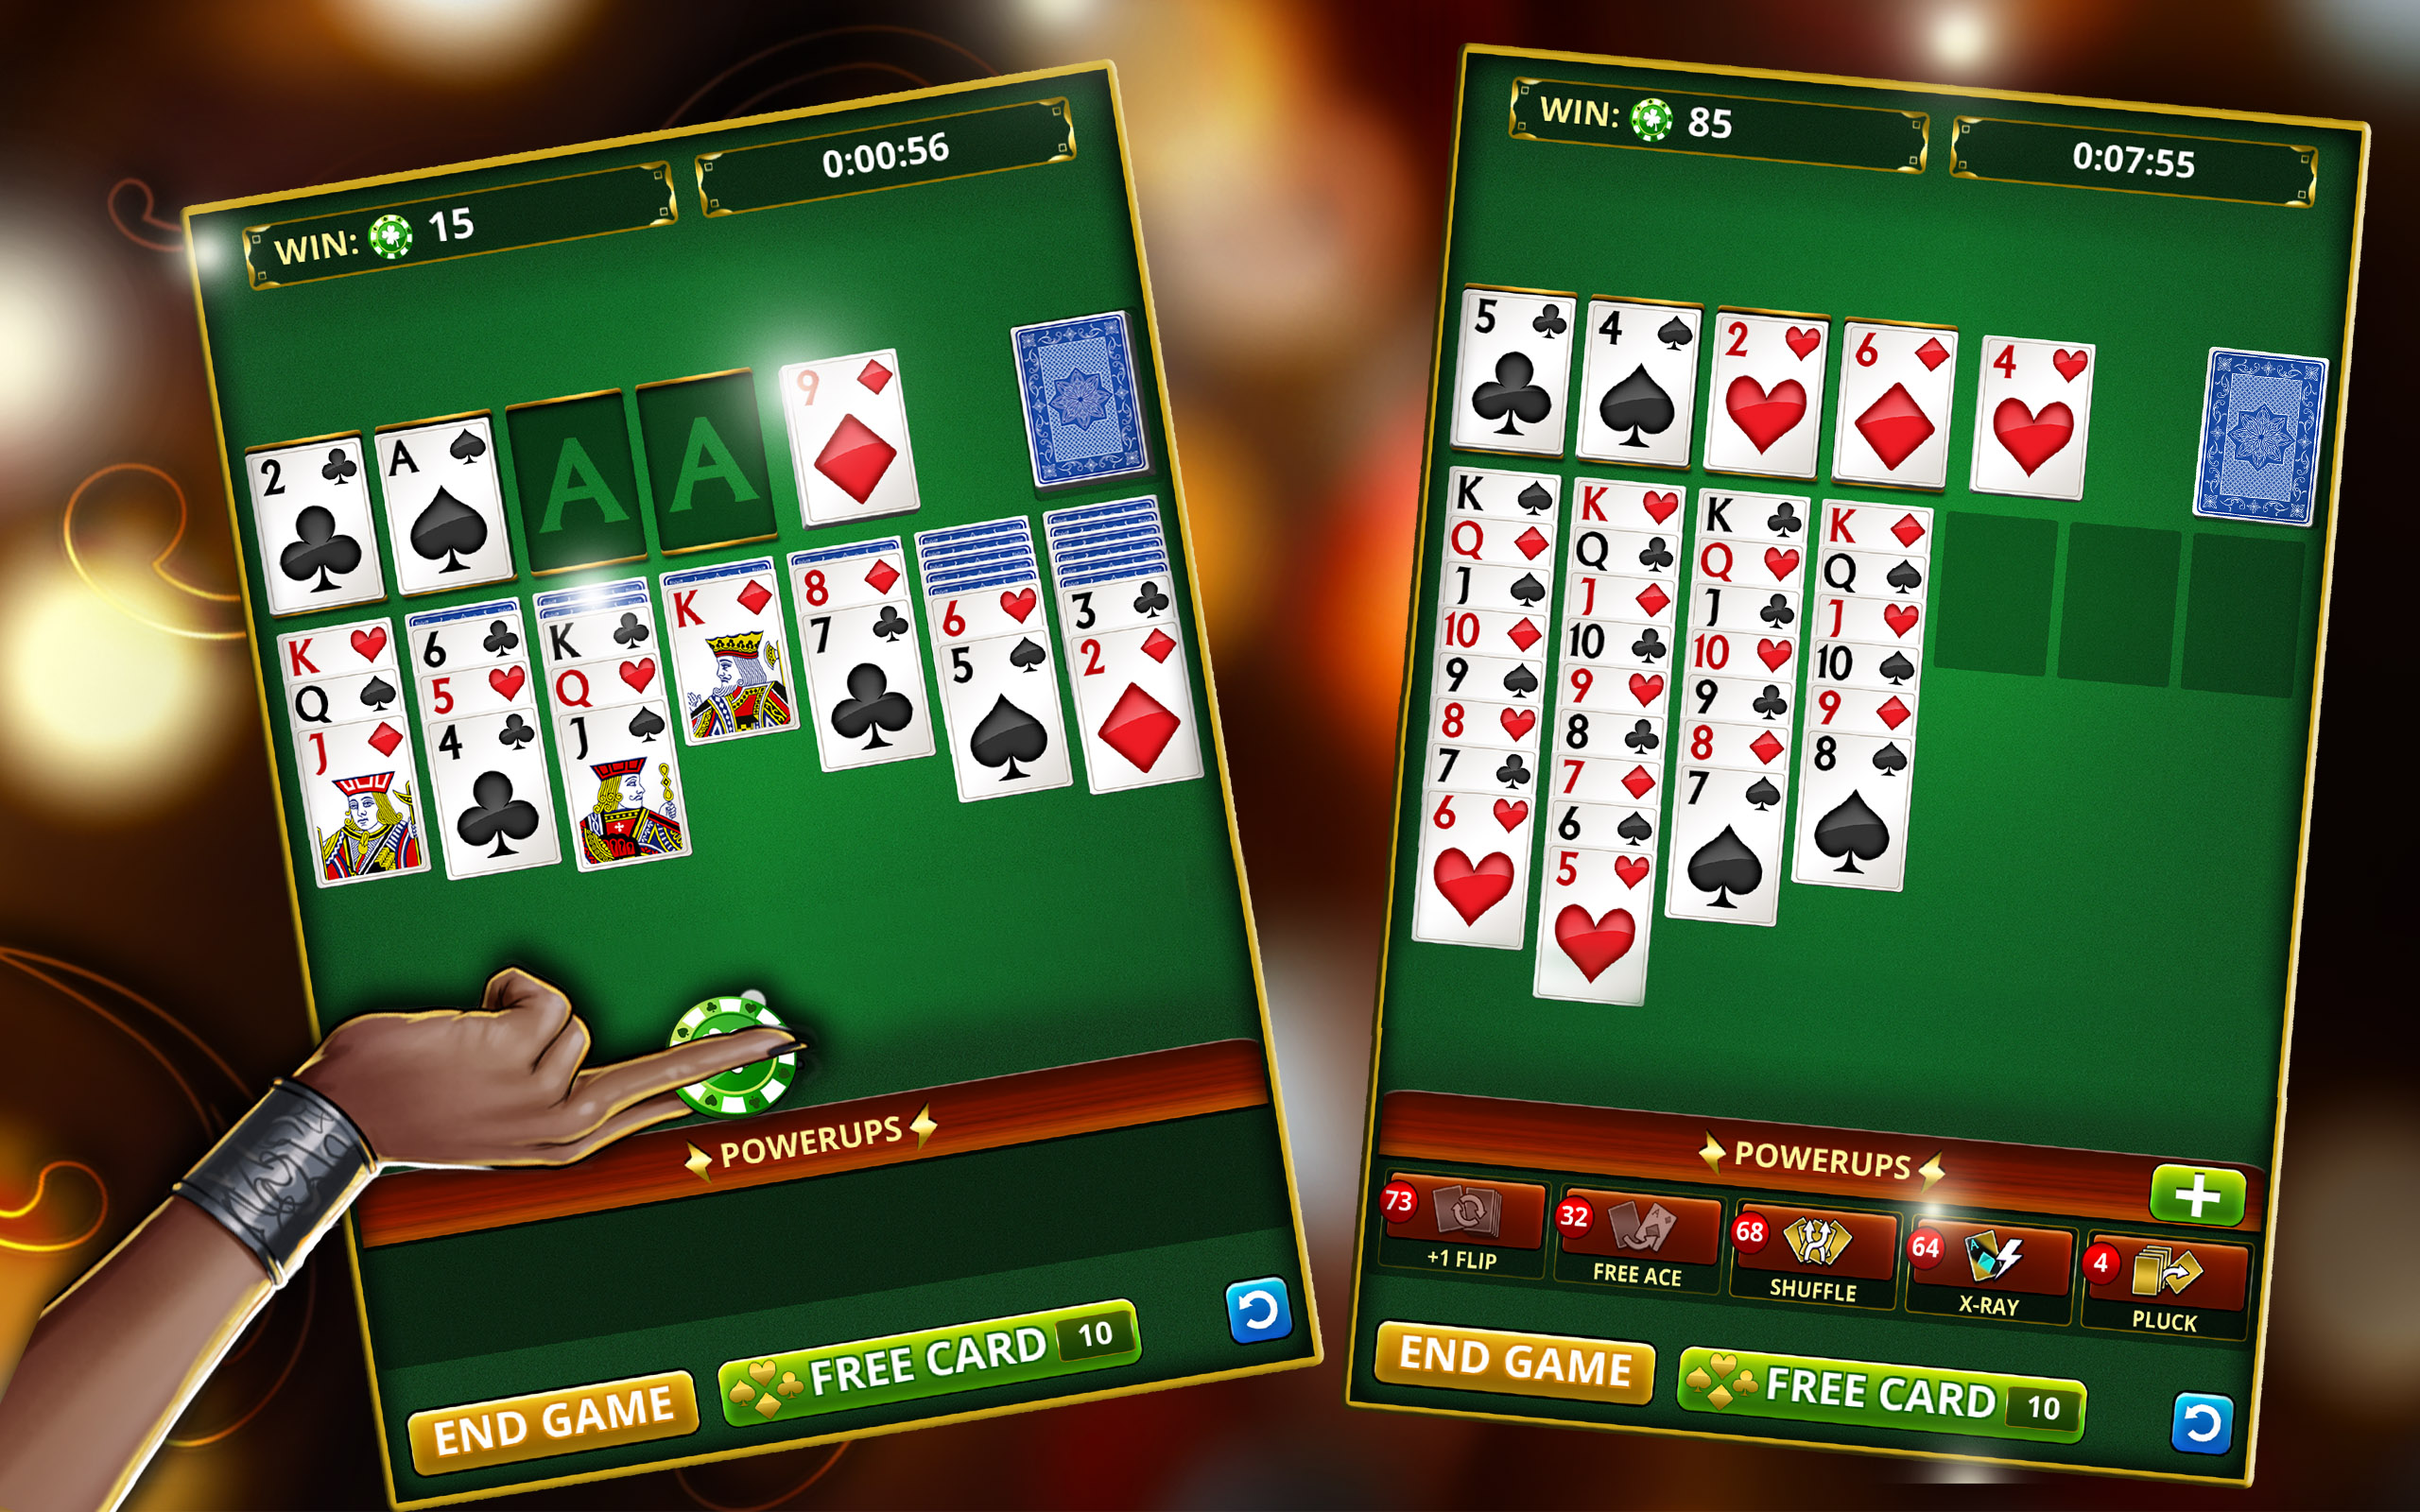 royal vegas online casino download  kostenlos downloaden